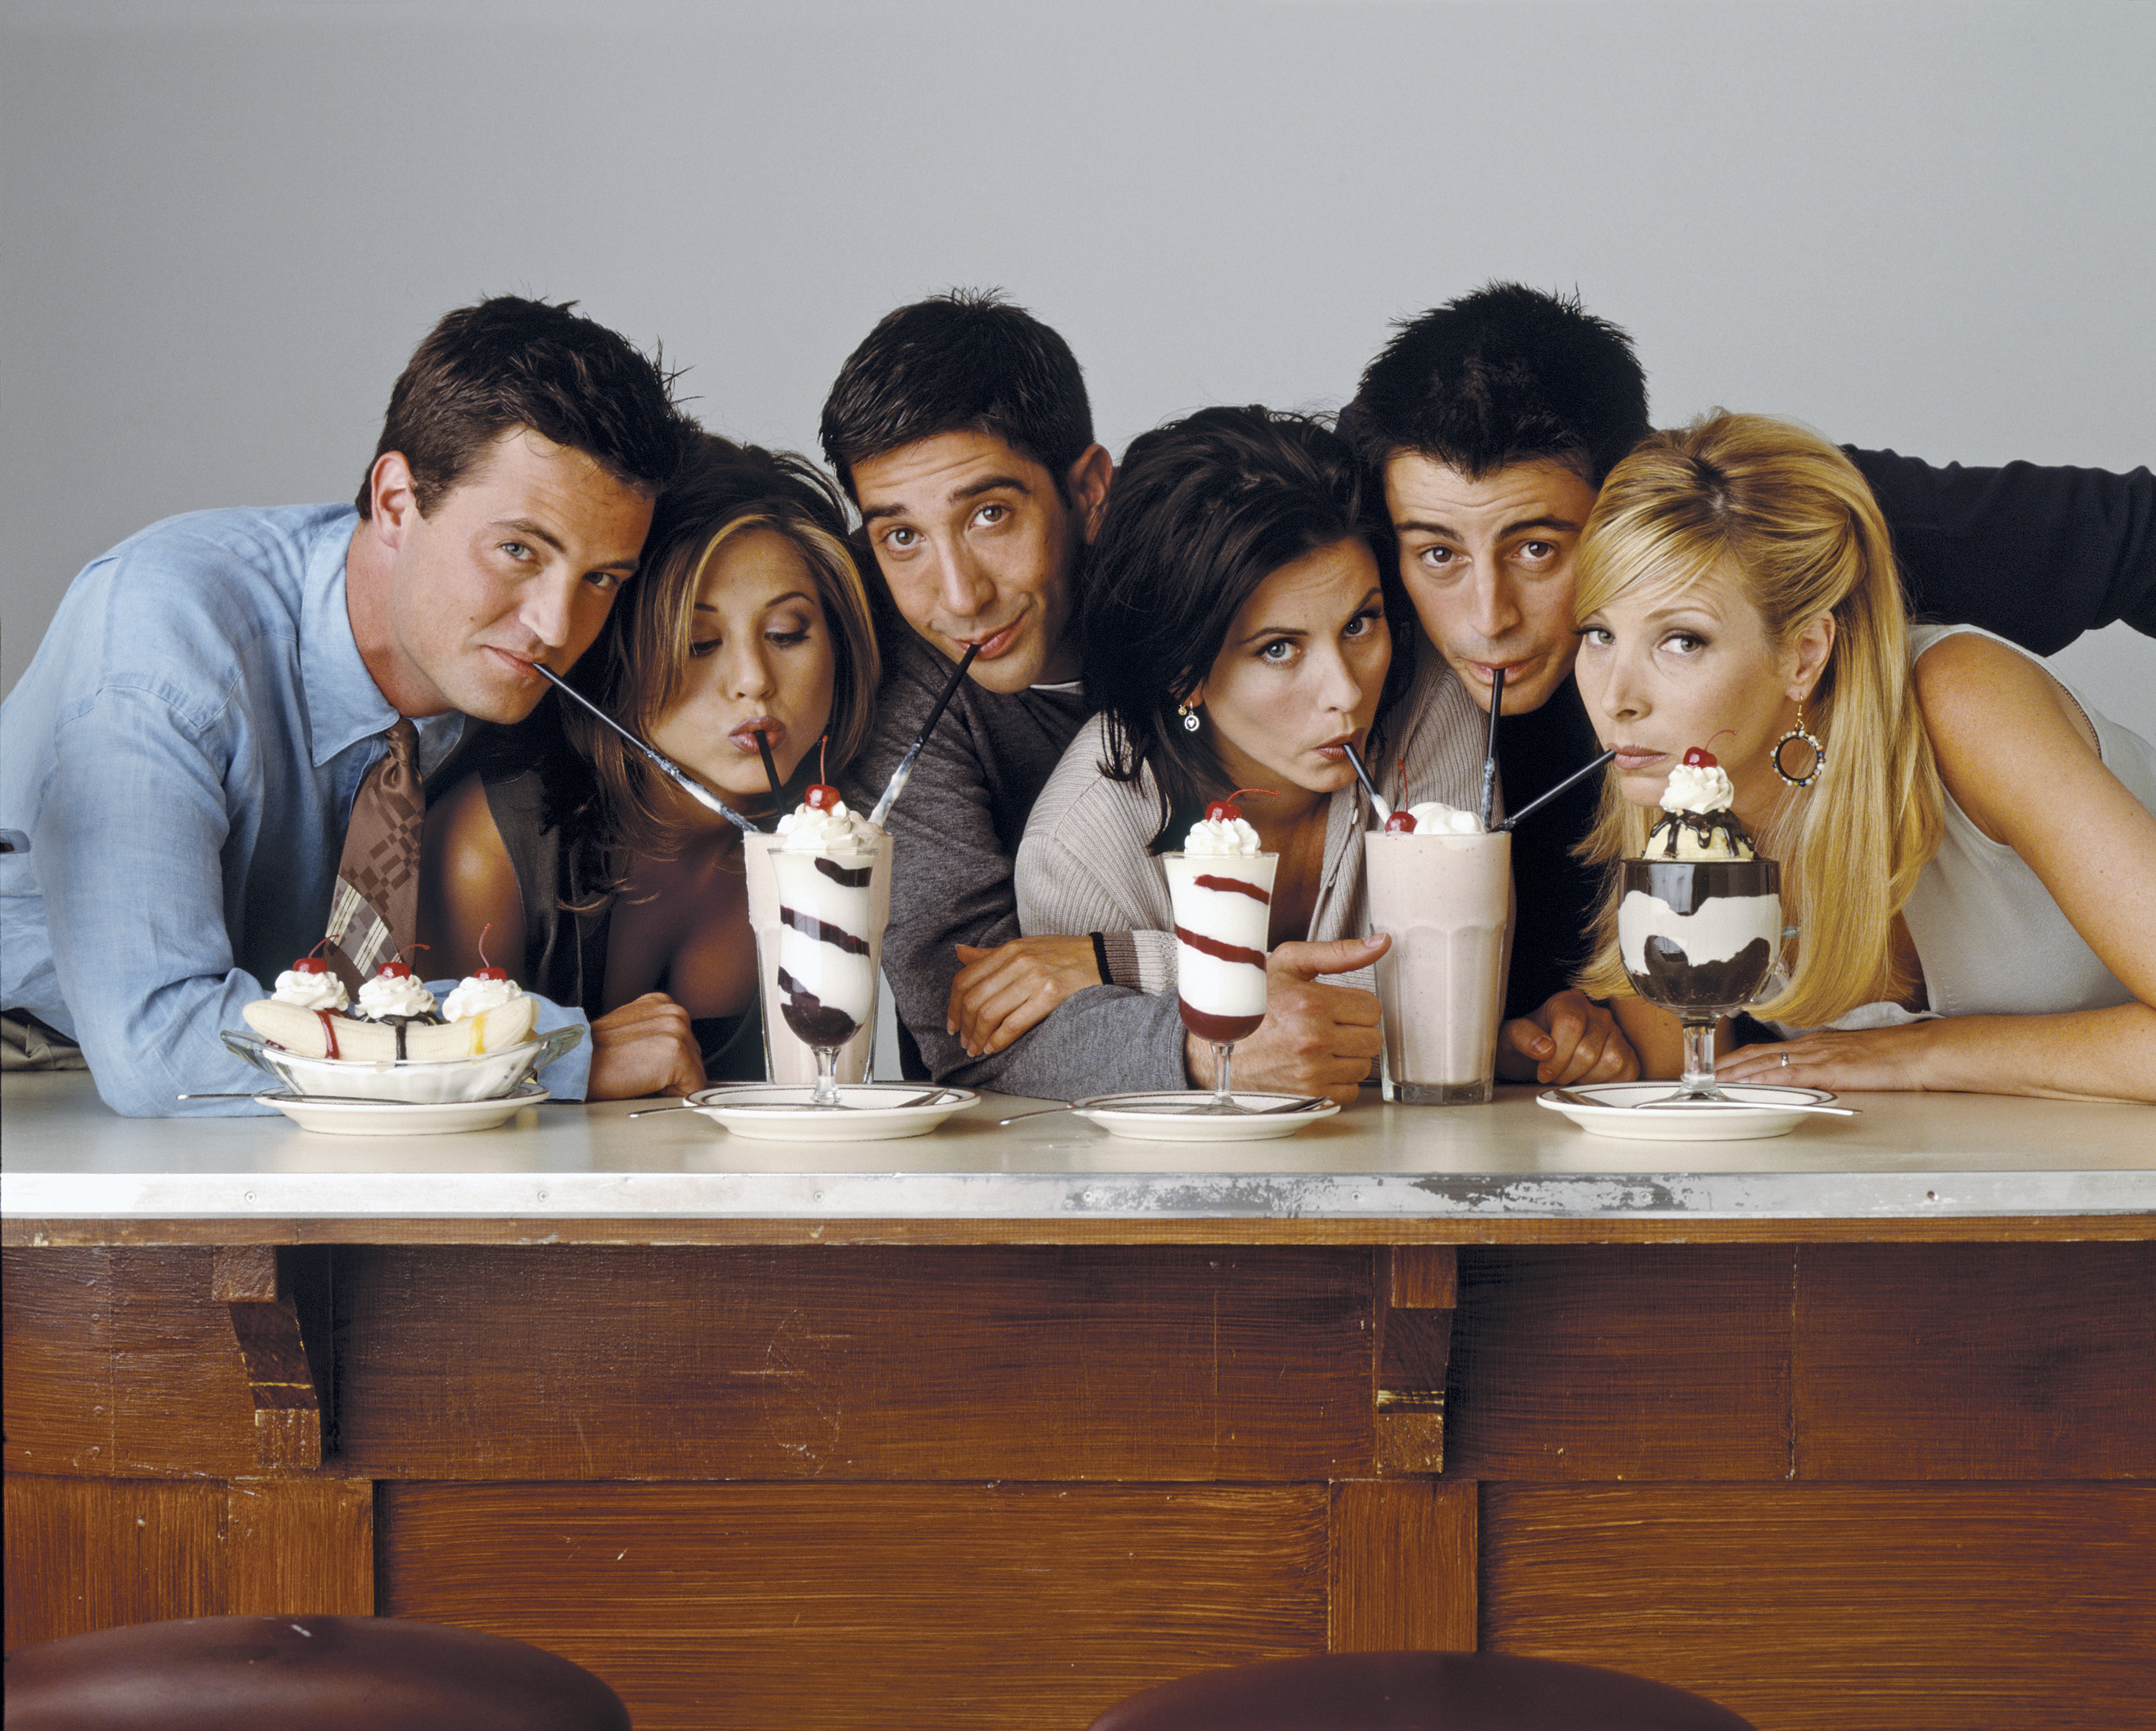 FRIENDS - Matthew Perry as Chandler Bing, Jennifer Aniston as Rachel Green, David Schwimmer as Ross Geller, Courteney Cox as Monica Geller, Matt Le Blanc as Joey Tribbiani, Lisa Kudrow as Phoebe Buffay  (Photo by NBC/NBCU Photo Bank via Getty Images)